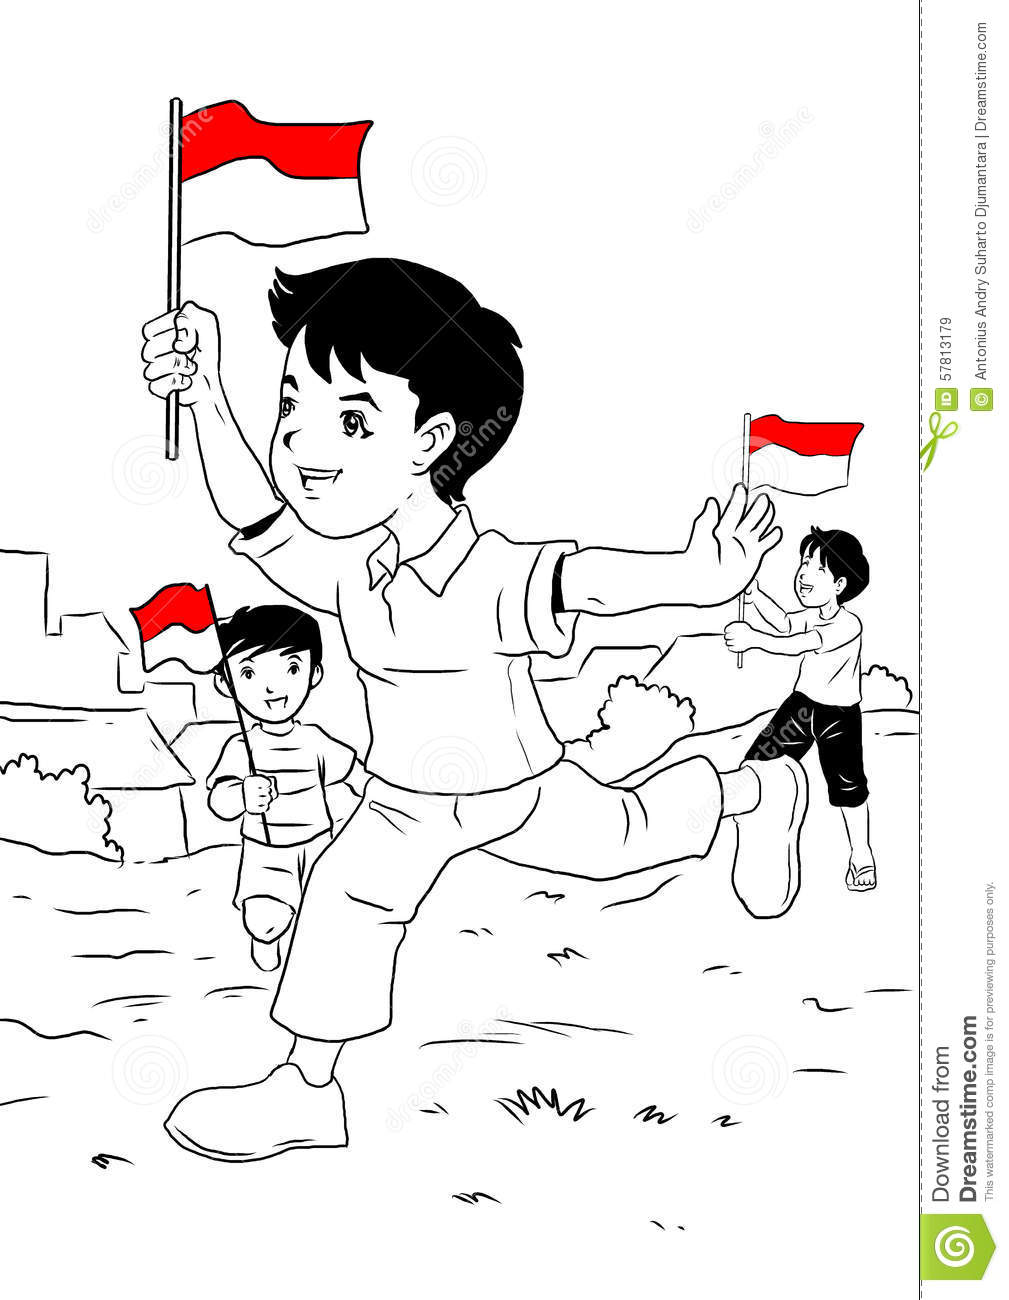 Indonesia independence day clipart clip art stock Indonesian Kids Celebrating Independence Day Stock Illustration ... clip art stock